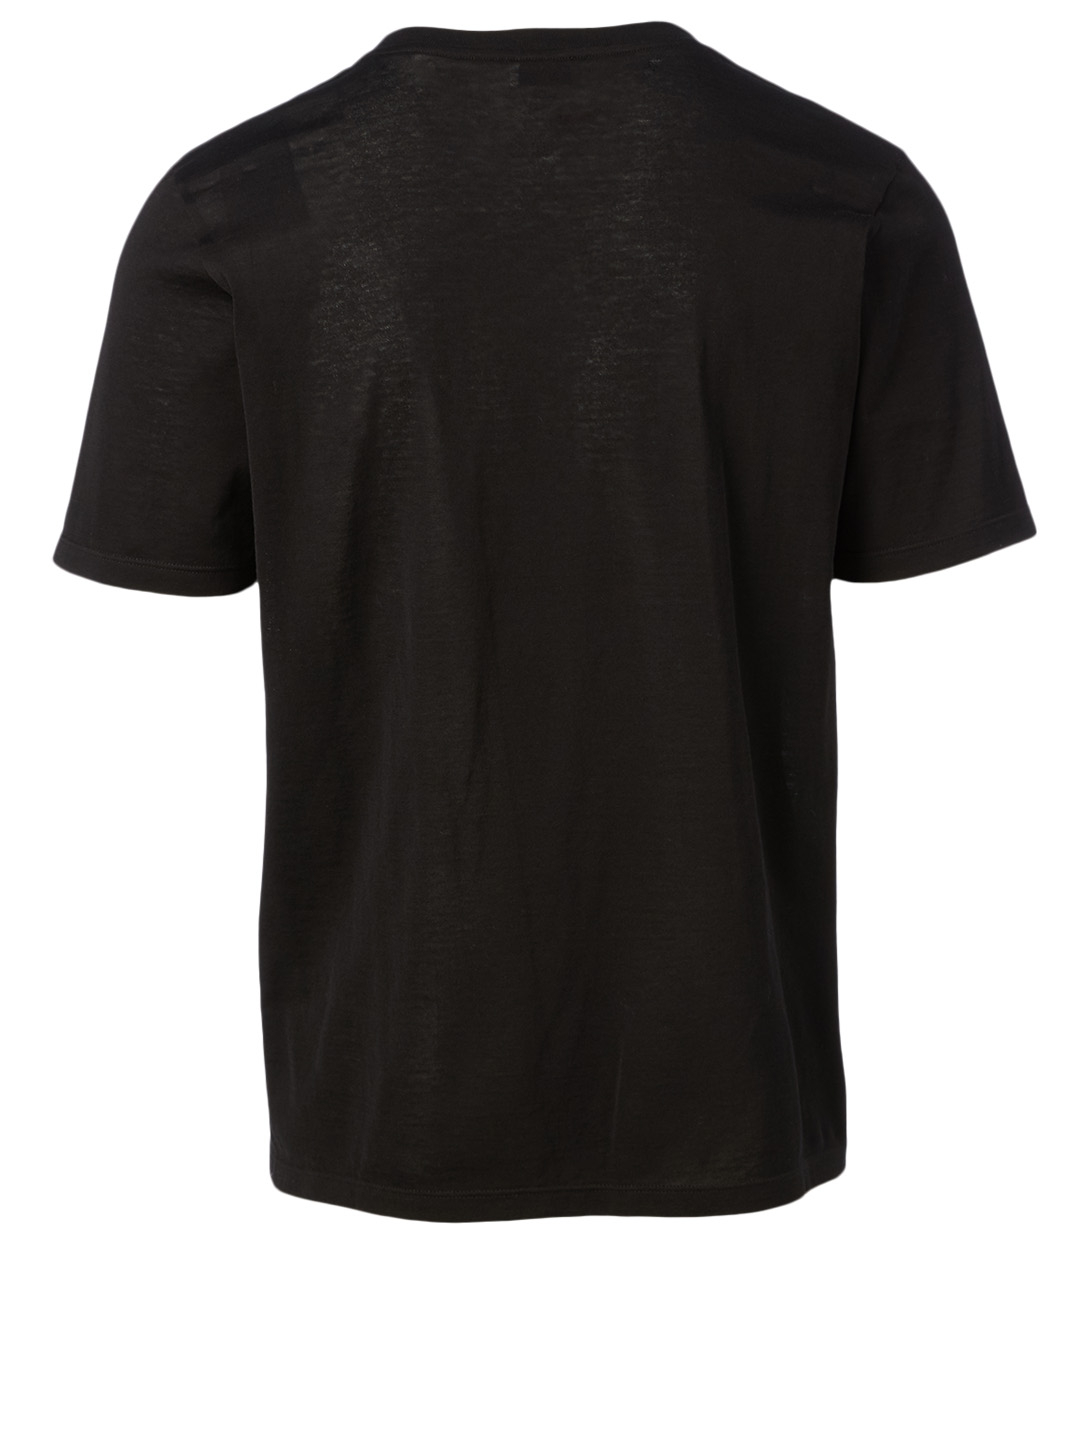 SAINT LAURENT Cotton Jacquard T-Shirt Men's Black